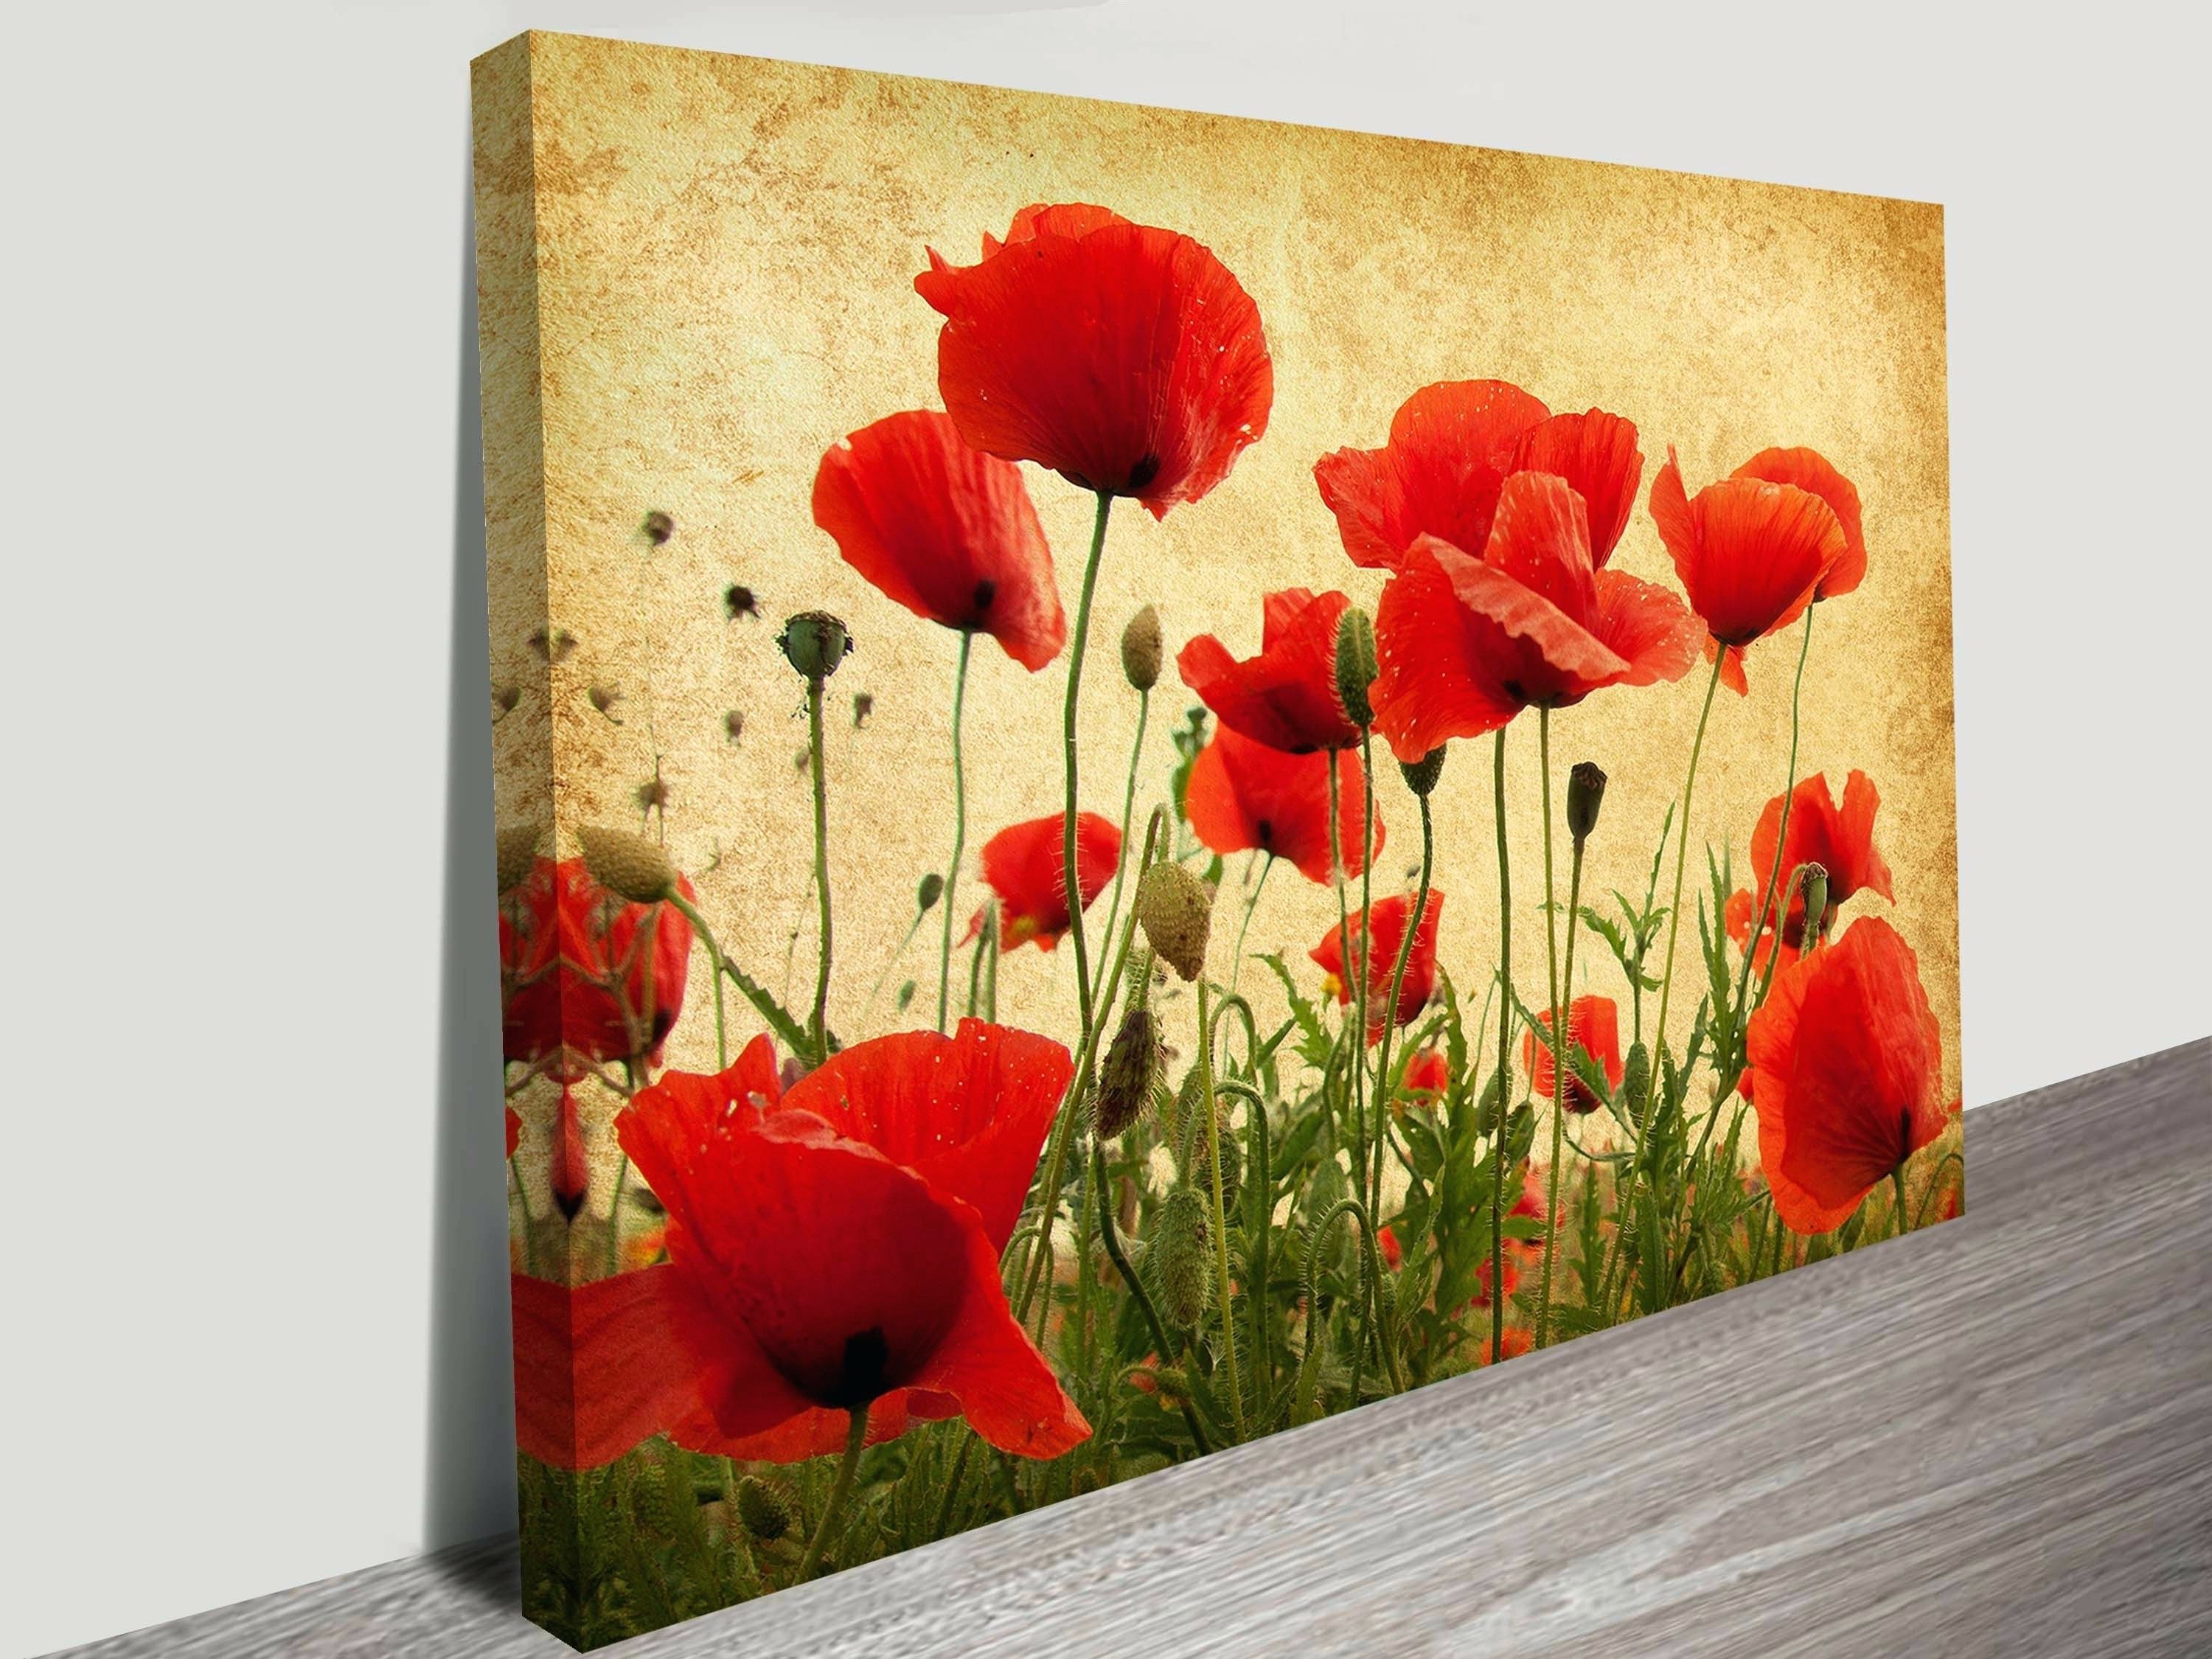 Favorite Wall Arts ~ Poppy Wall Art Nz Poppy Wall Art Metal Poppy Wall Art Throughout Metal Poppy Wall Art (View 10 of 15)